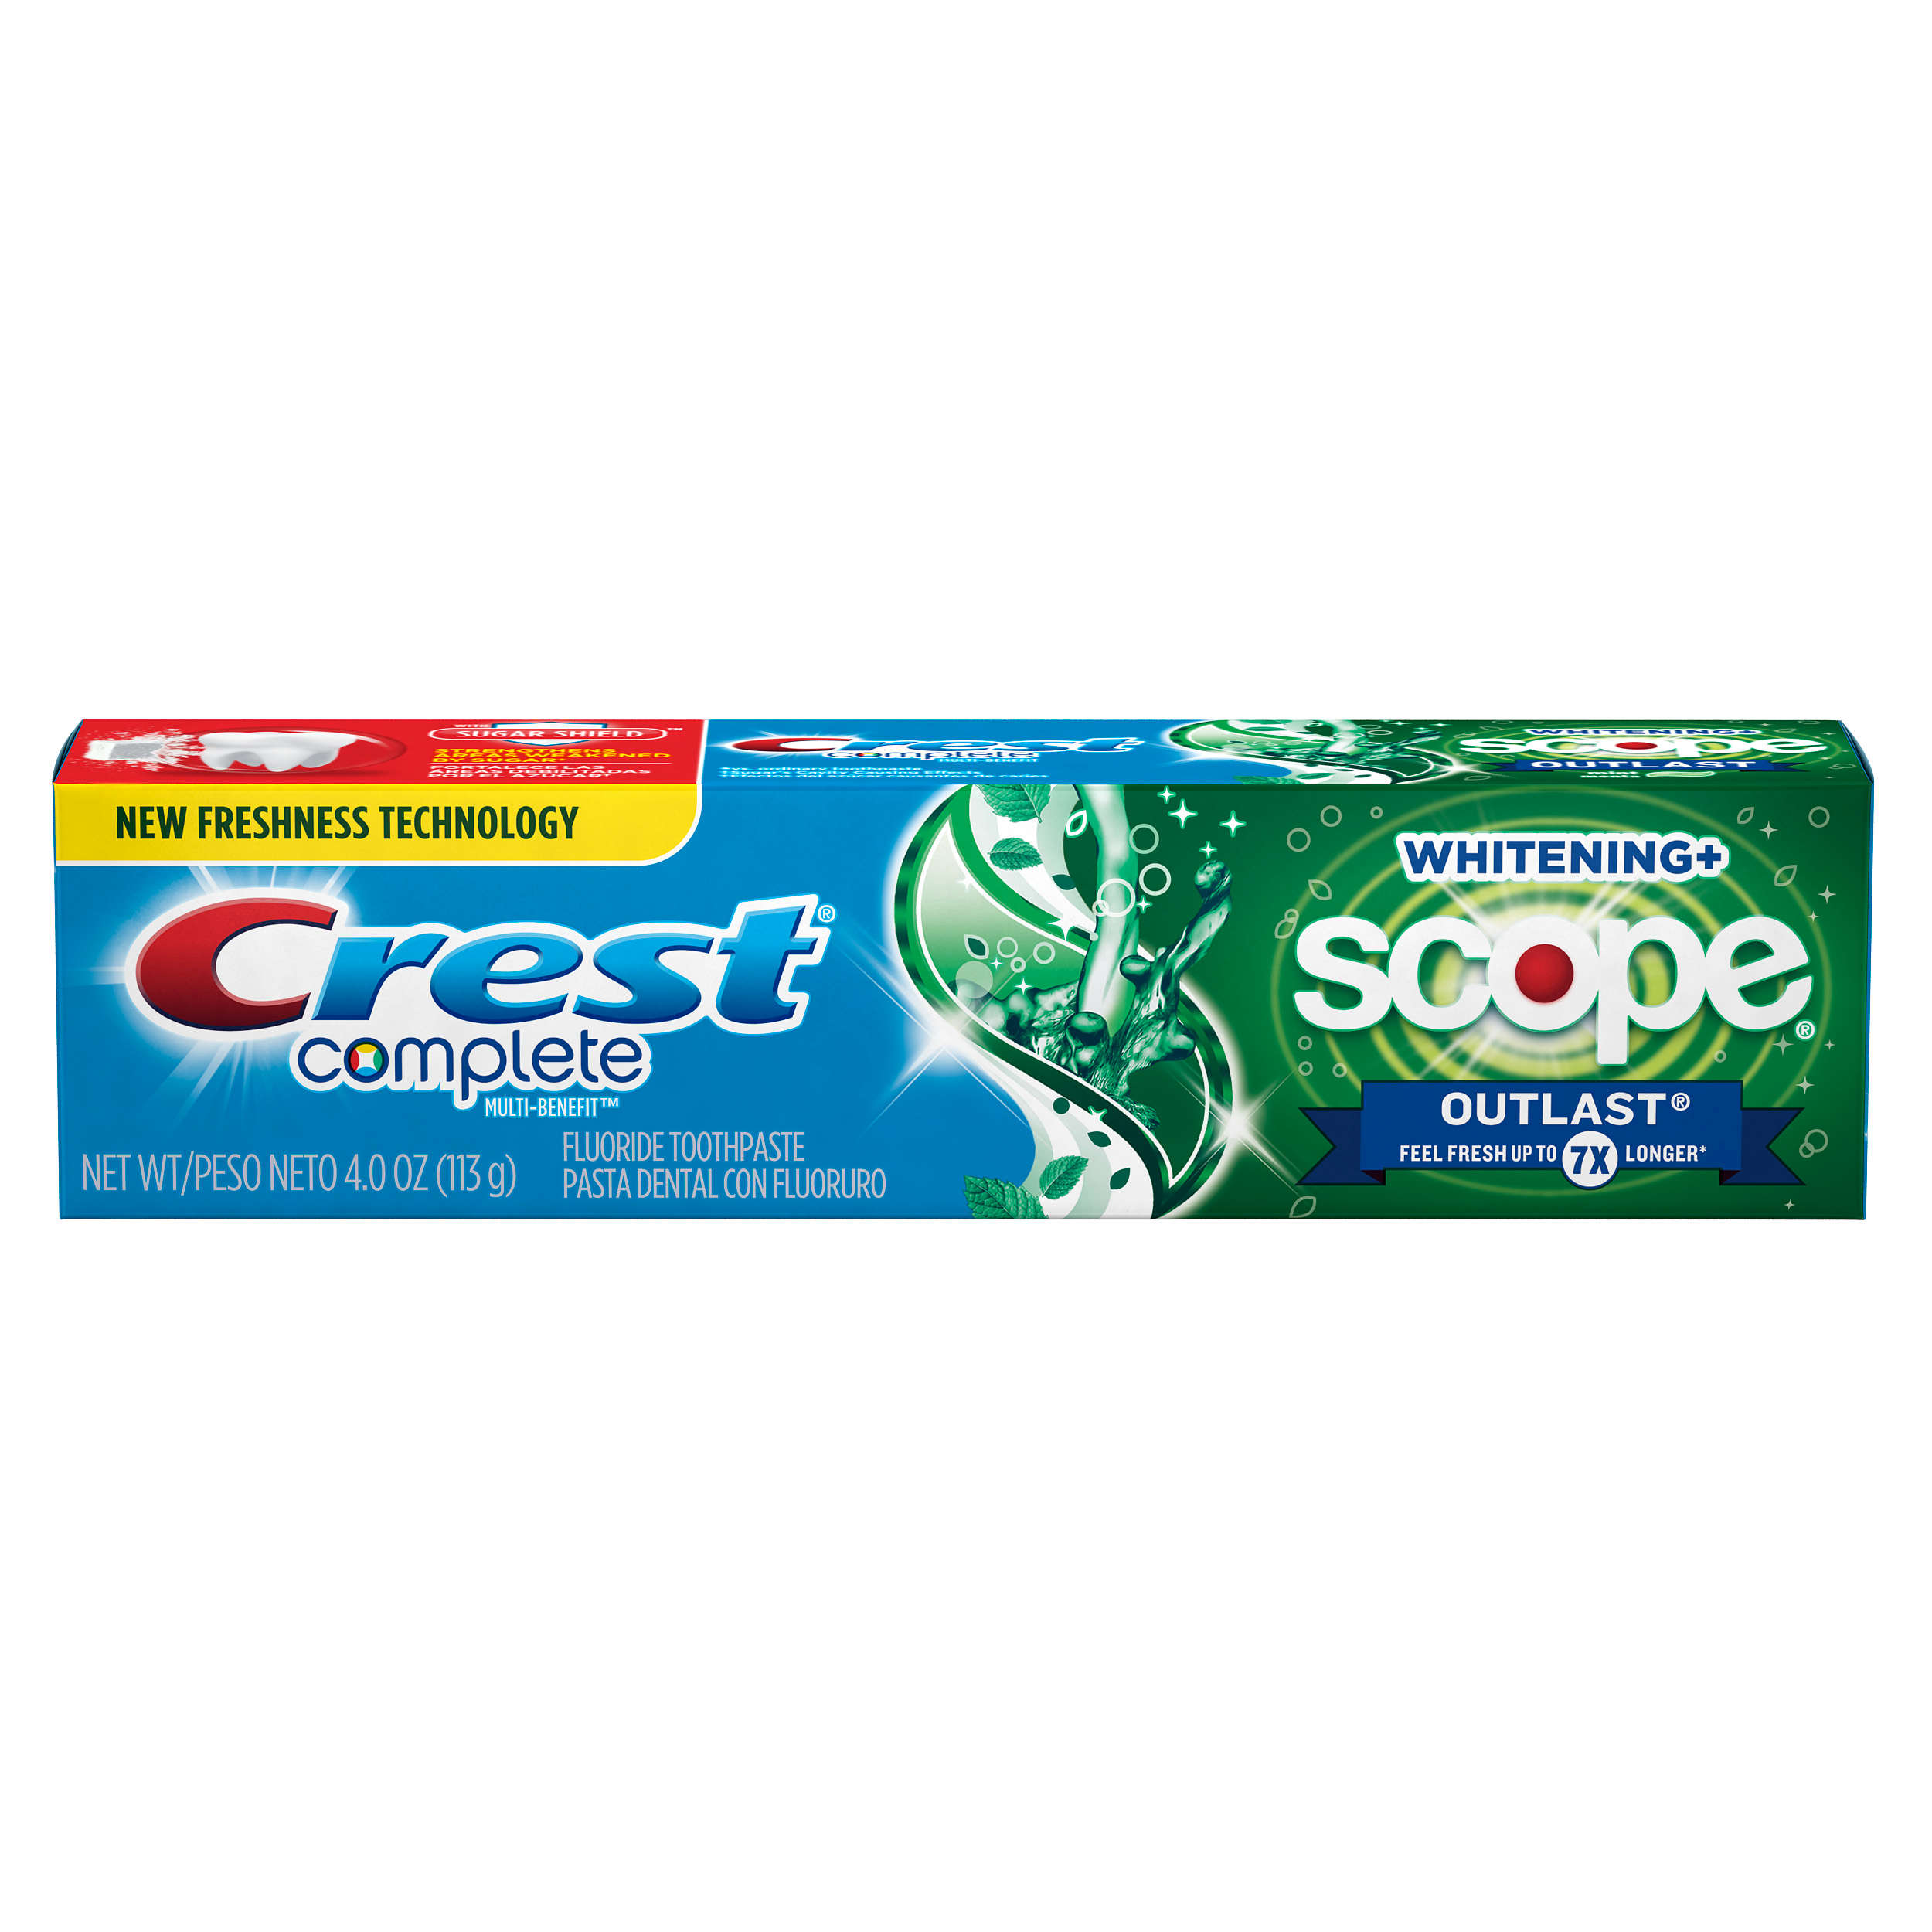 Crest Complete Whitening Plus Scope Outlast Toothpaste